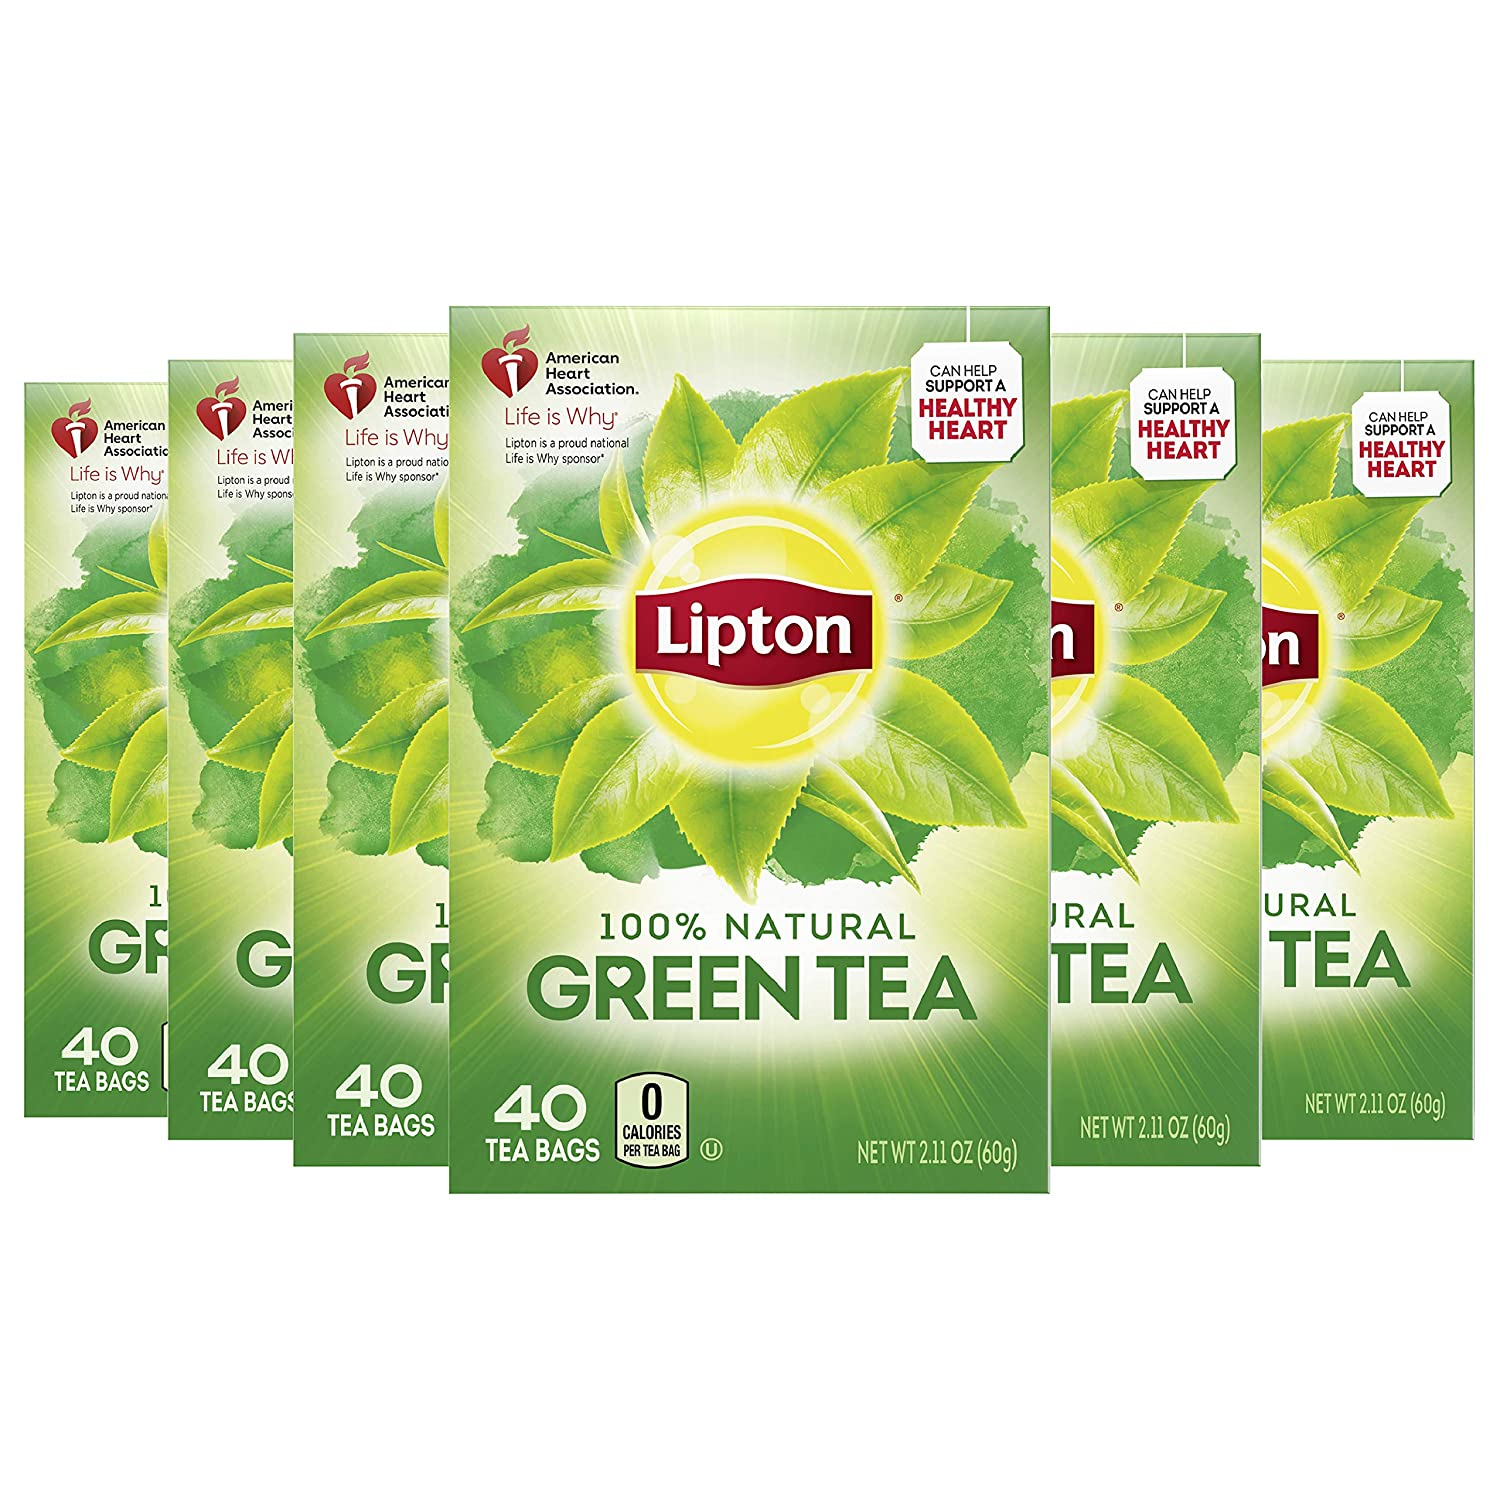 Lipton Tea Bags 100% Natural Green Help shipfree a Can 5 ☆ very popular Support Health